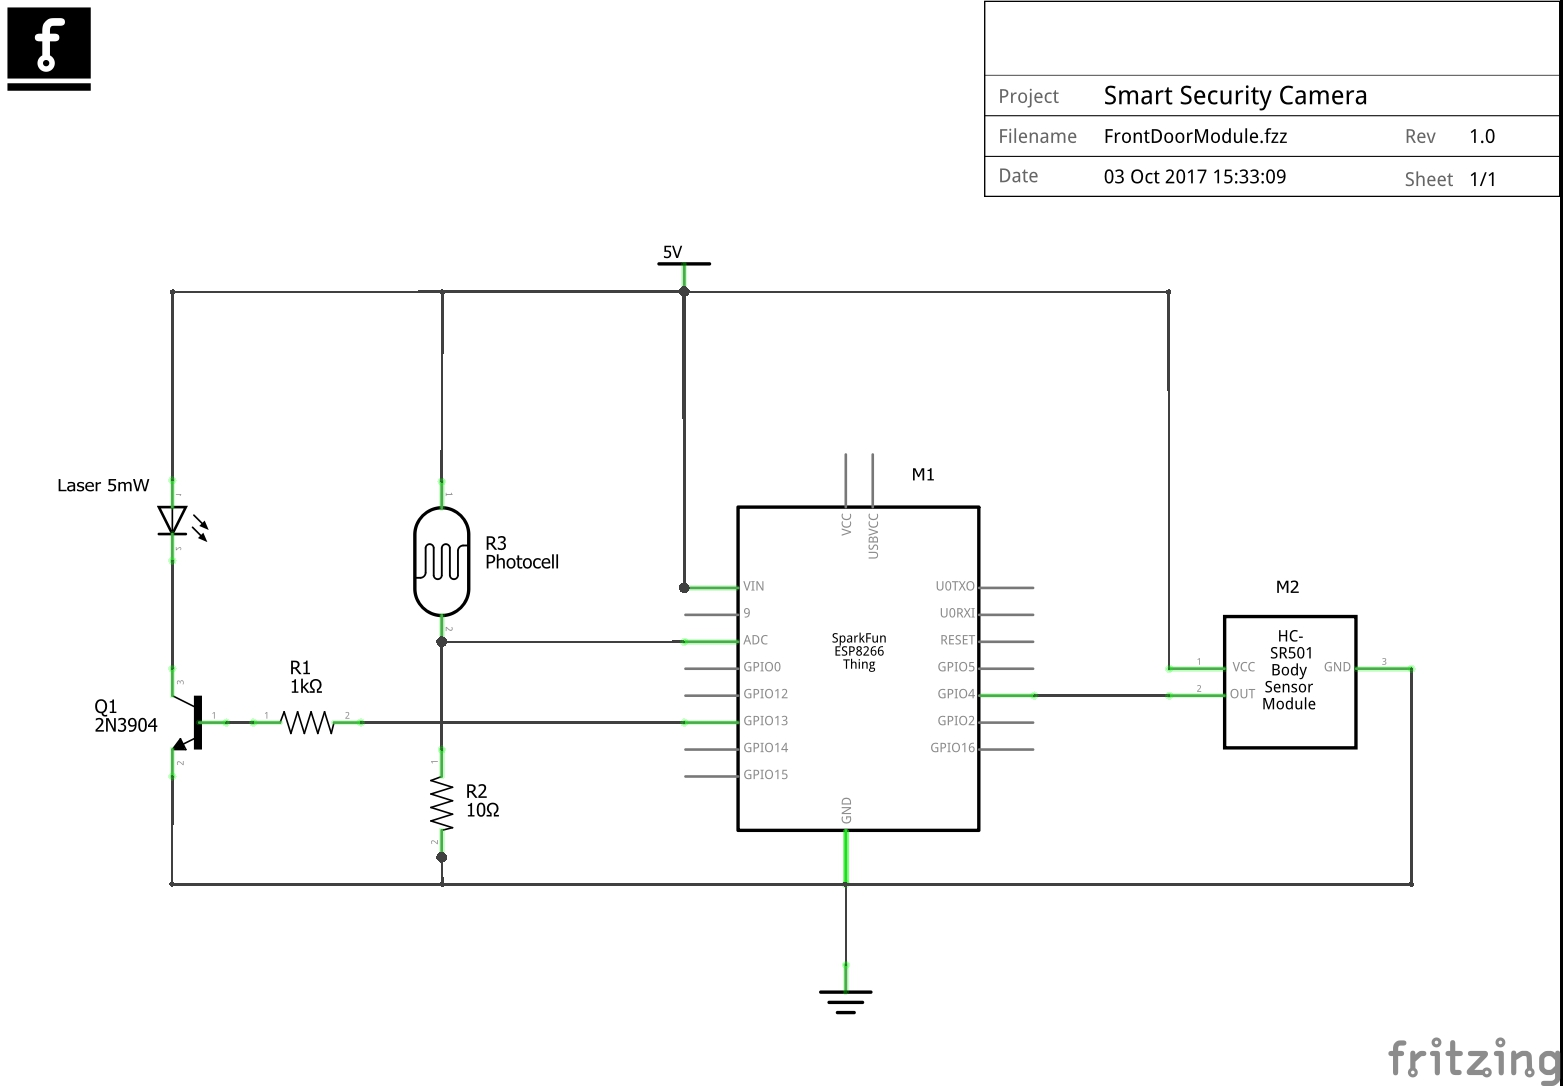 Wiring Diagram Ptz Cameras Outdoor Trusted Diagrams Camera Modular Surveillance Wire Product U2022 Security Schematics